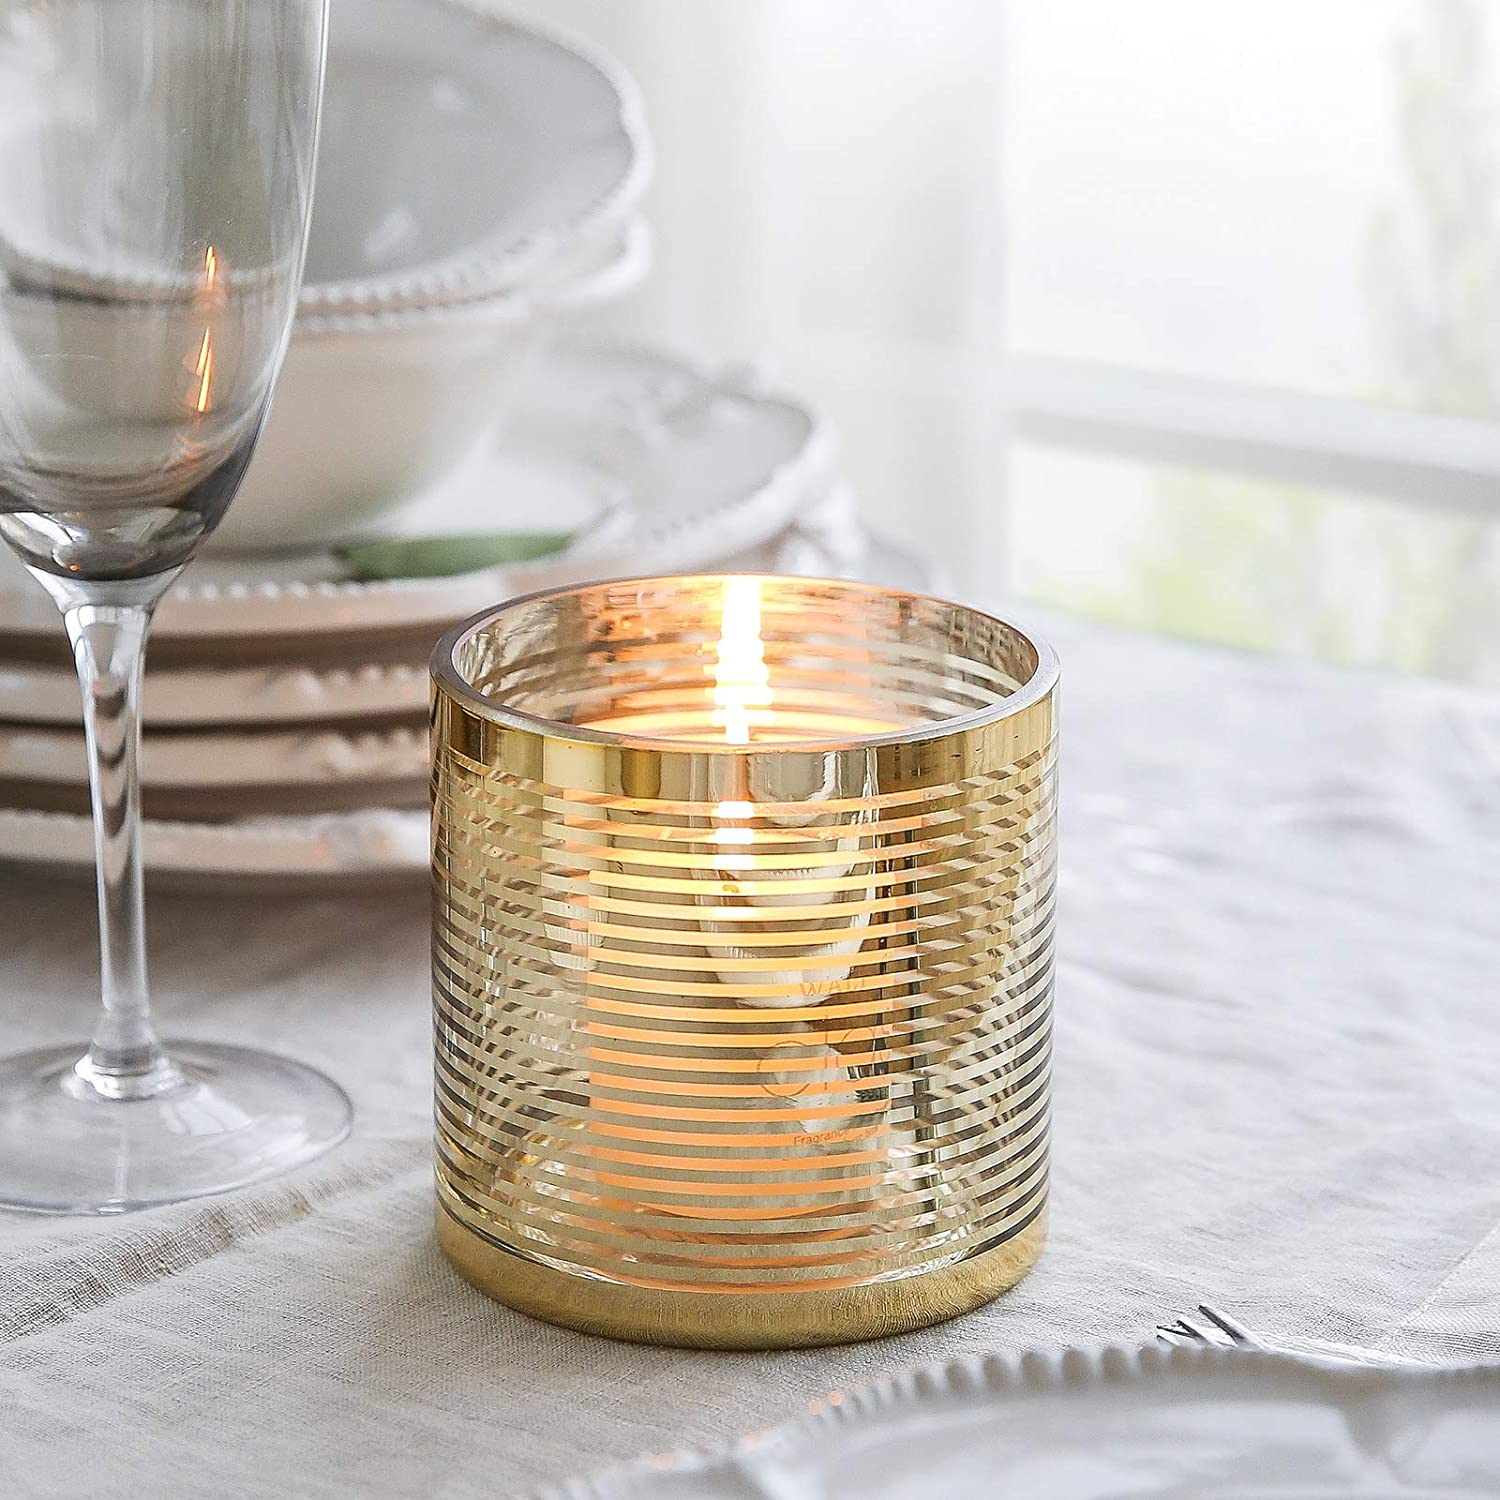 cyl home Hurricane Candleholders Clear Glass with Unique Golden Striped Decor Dining Table Centerpieces Cylinder Vases Gifts for Wedding Housewarming Christmas Party,3.9'' Height.